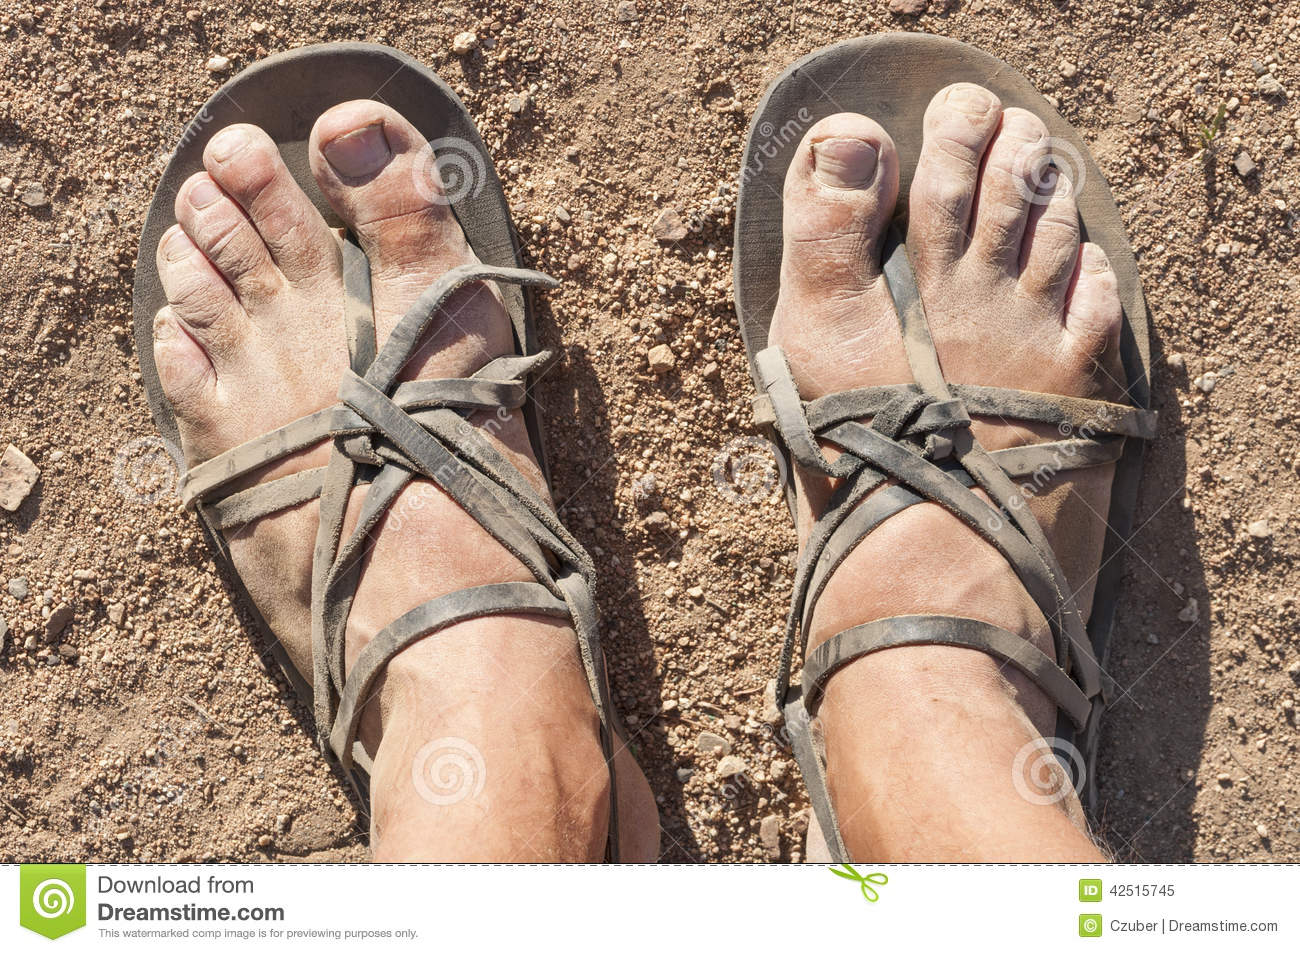 Dirty feet in sandals stock image. Image of sandals, angle.